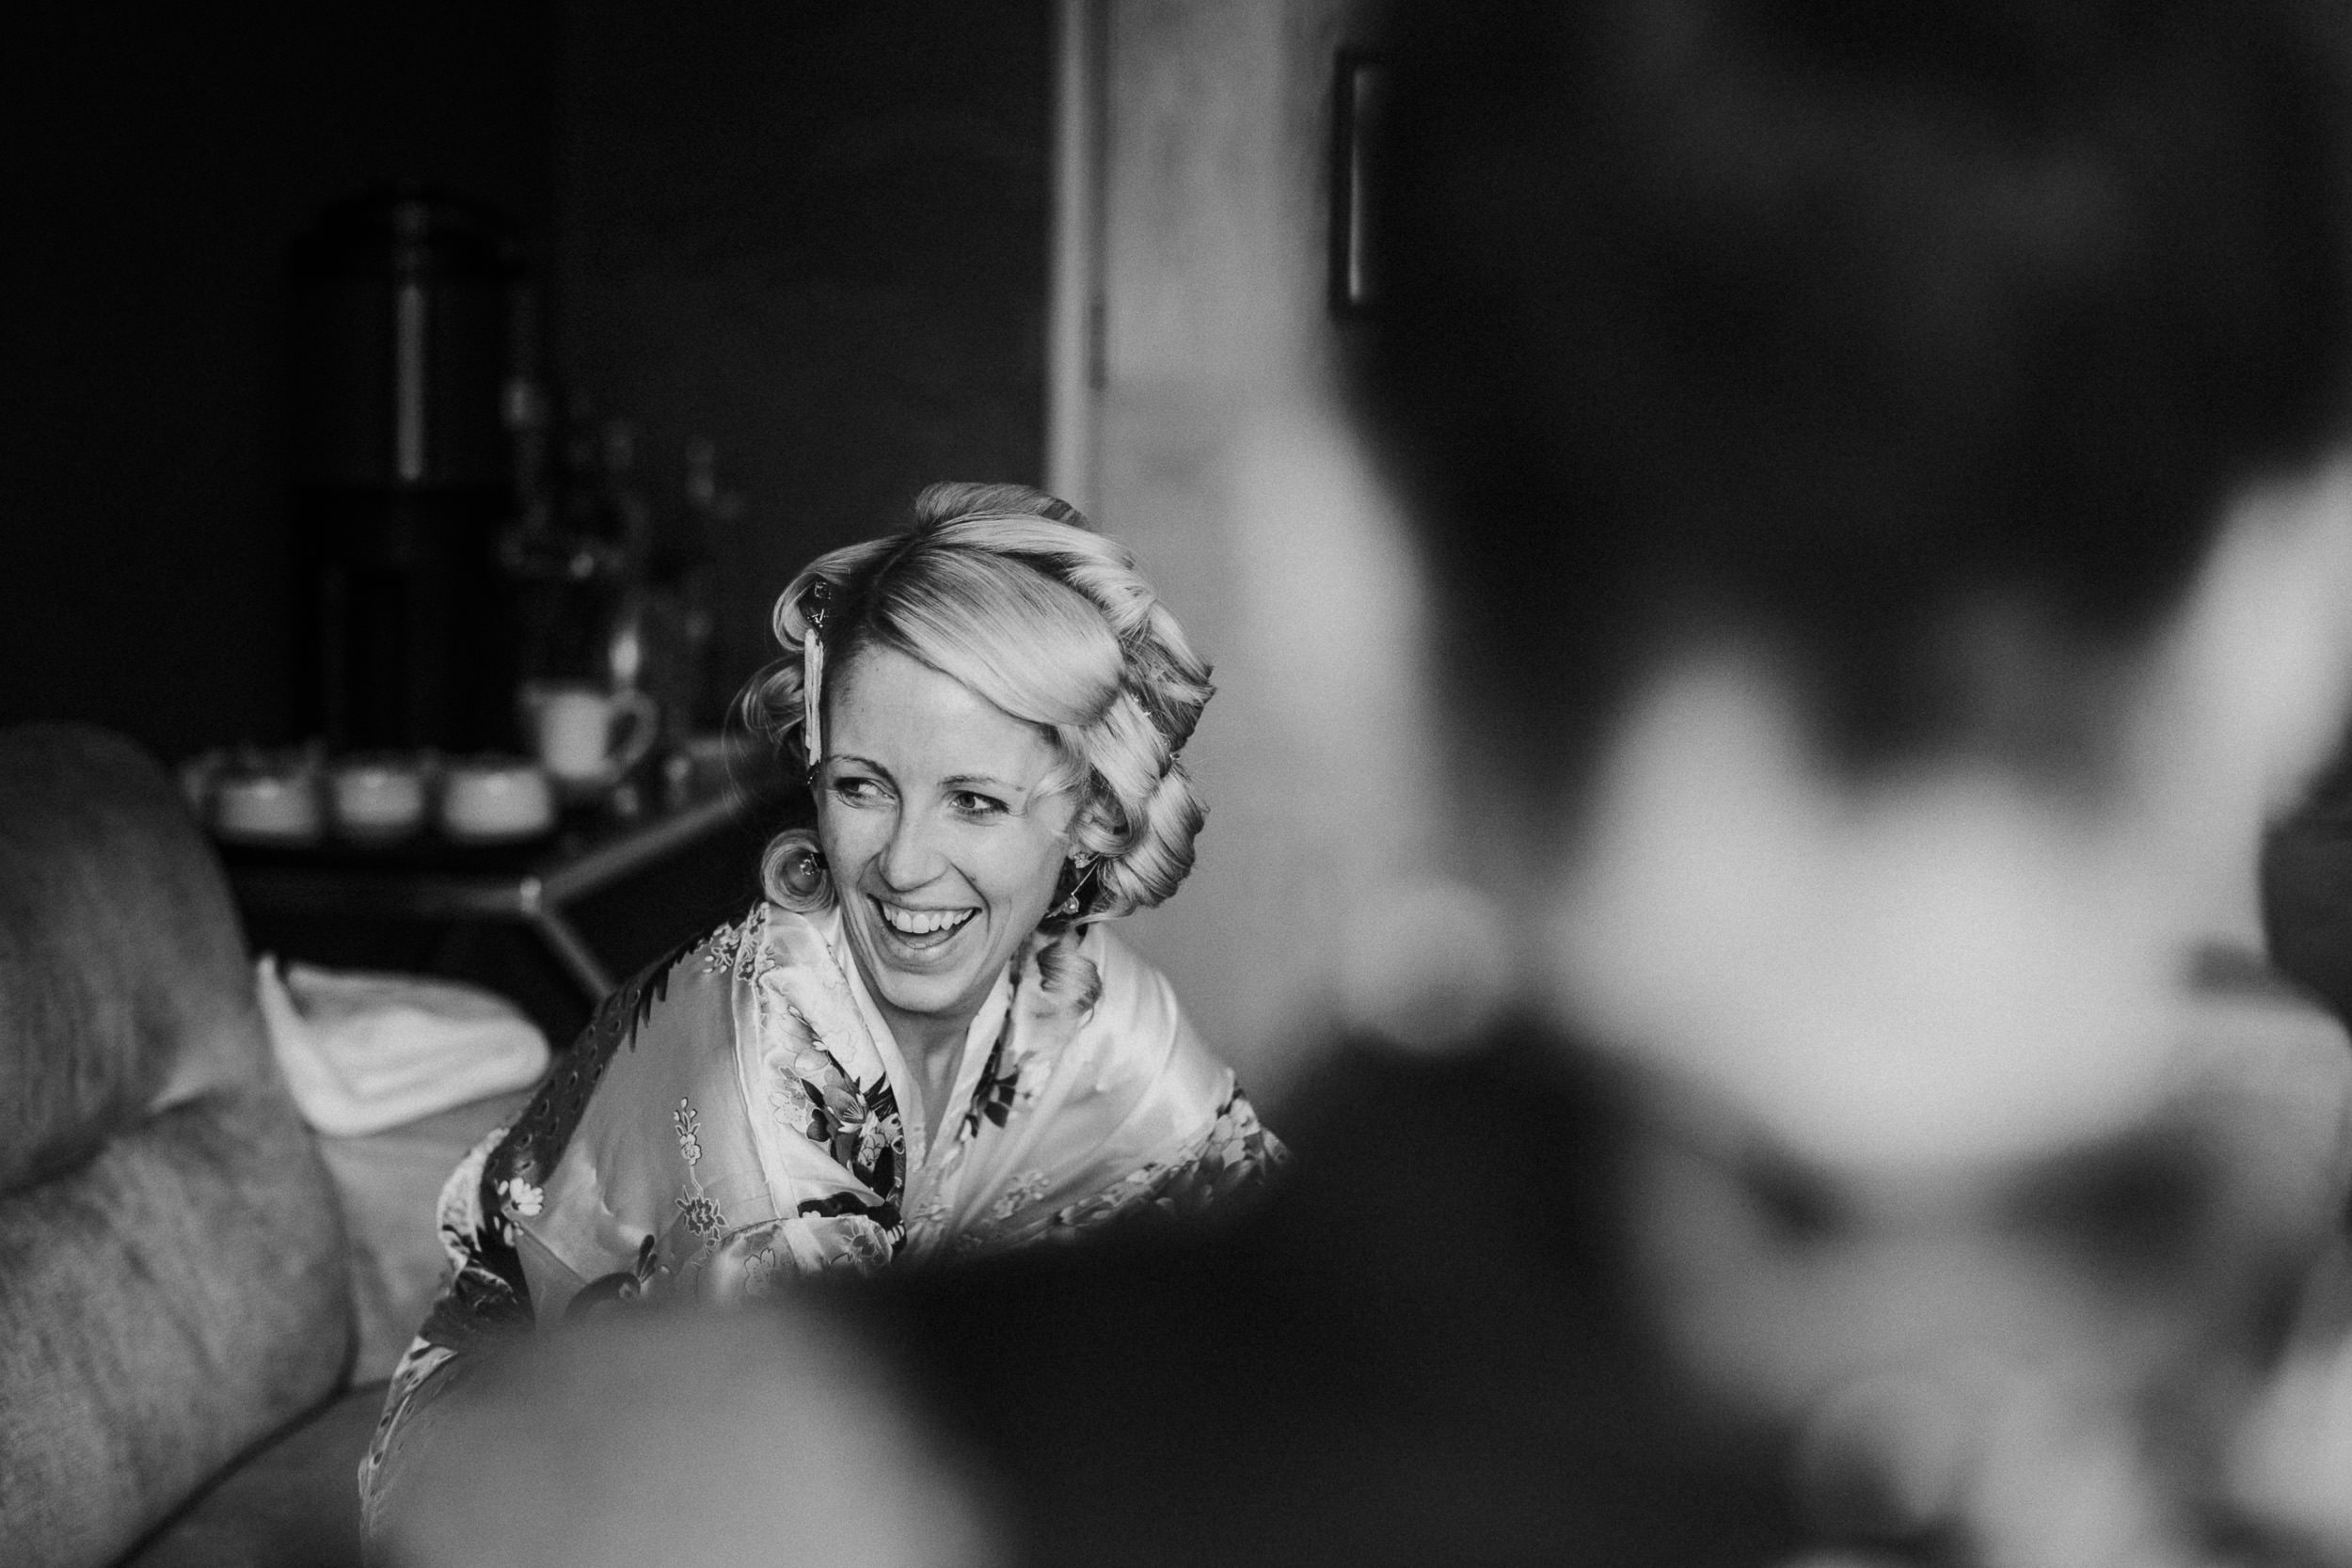 clairebyrnephotography-fun-wedding-photographer-ireland-creative-162.jpg